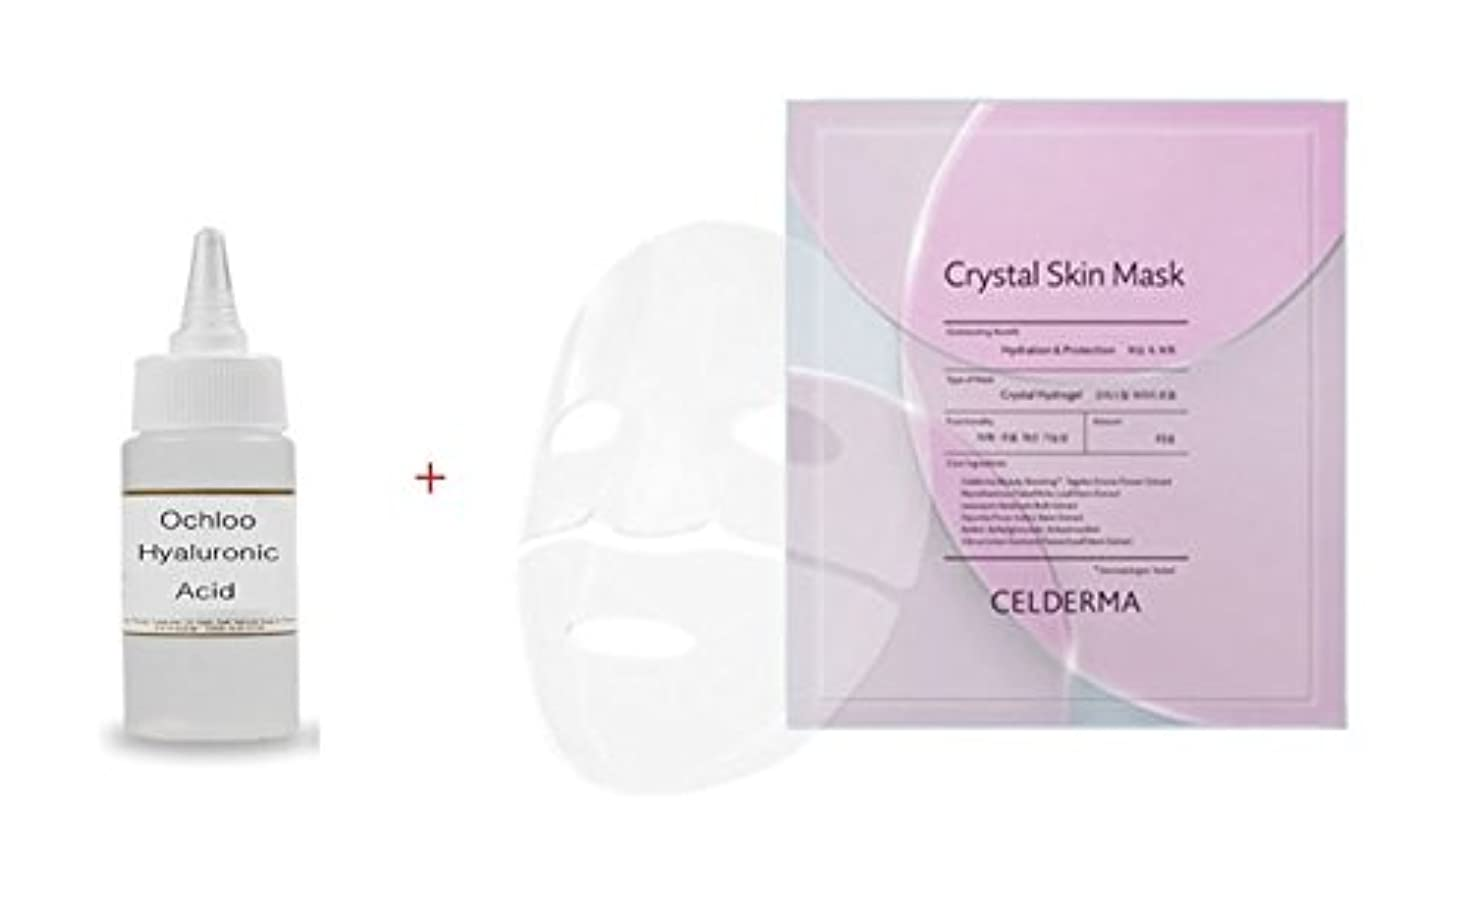 微生物クラッチ製油所CELDERMA Crystal Skin Mask: Pretty Transparent Hydrogel Pack Tightly fitted perfectly like my skin (23gx 5) 素敵...